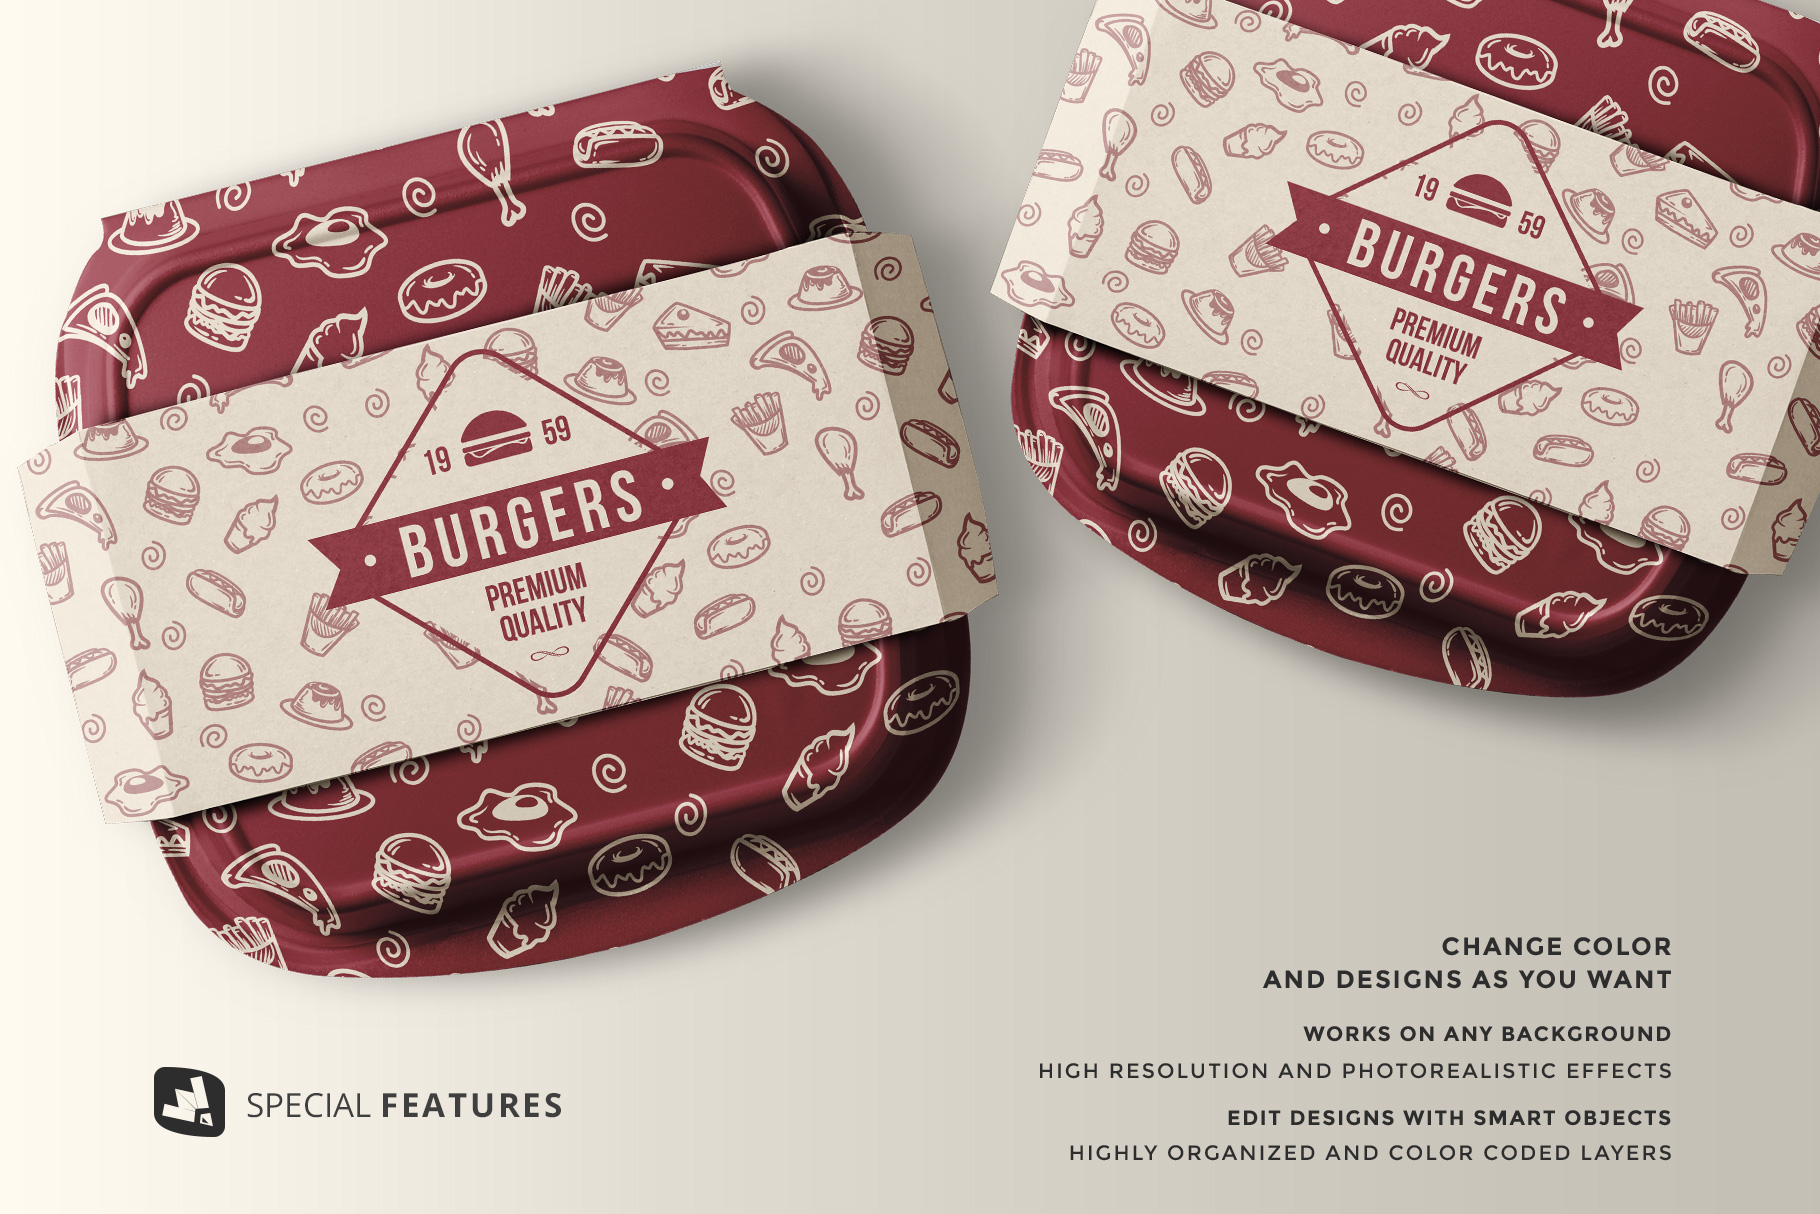 features of the fast food container packaging mockup